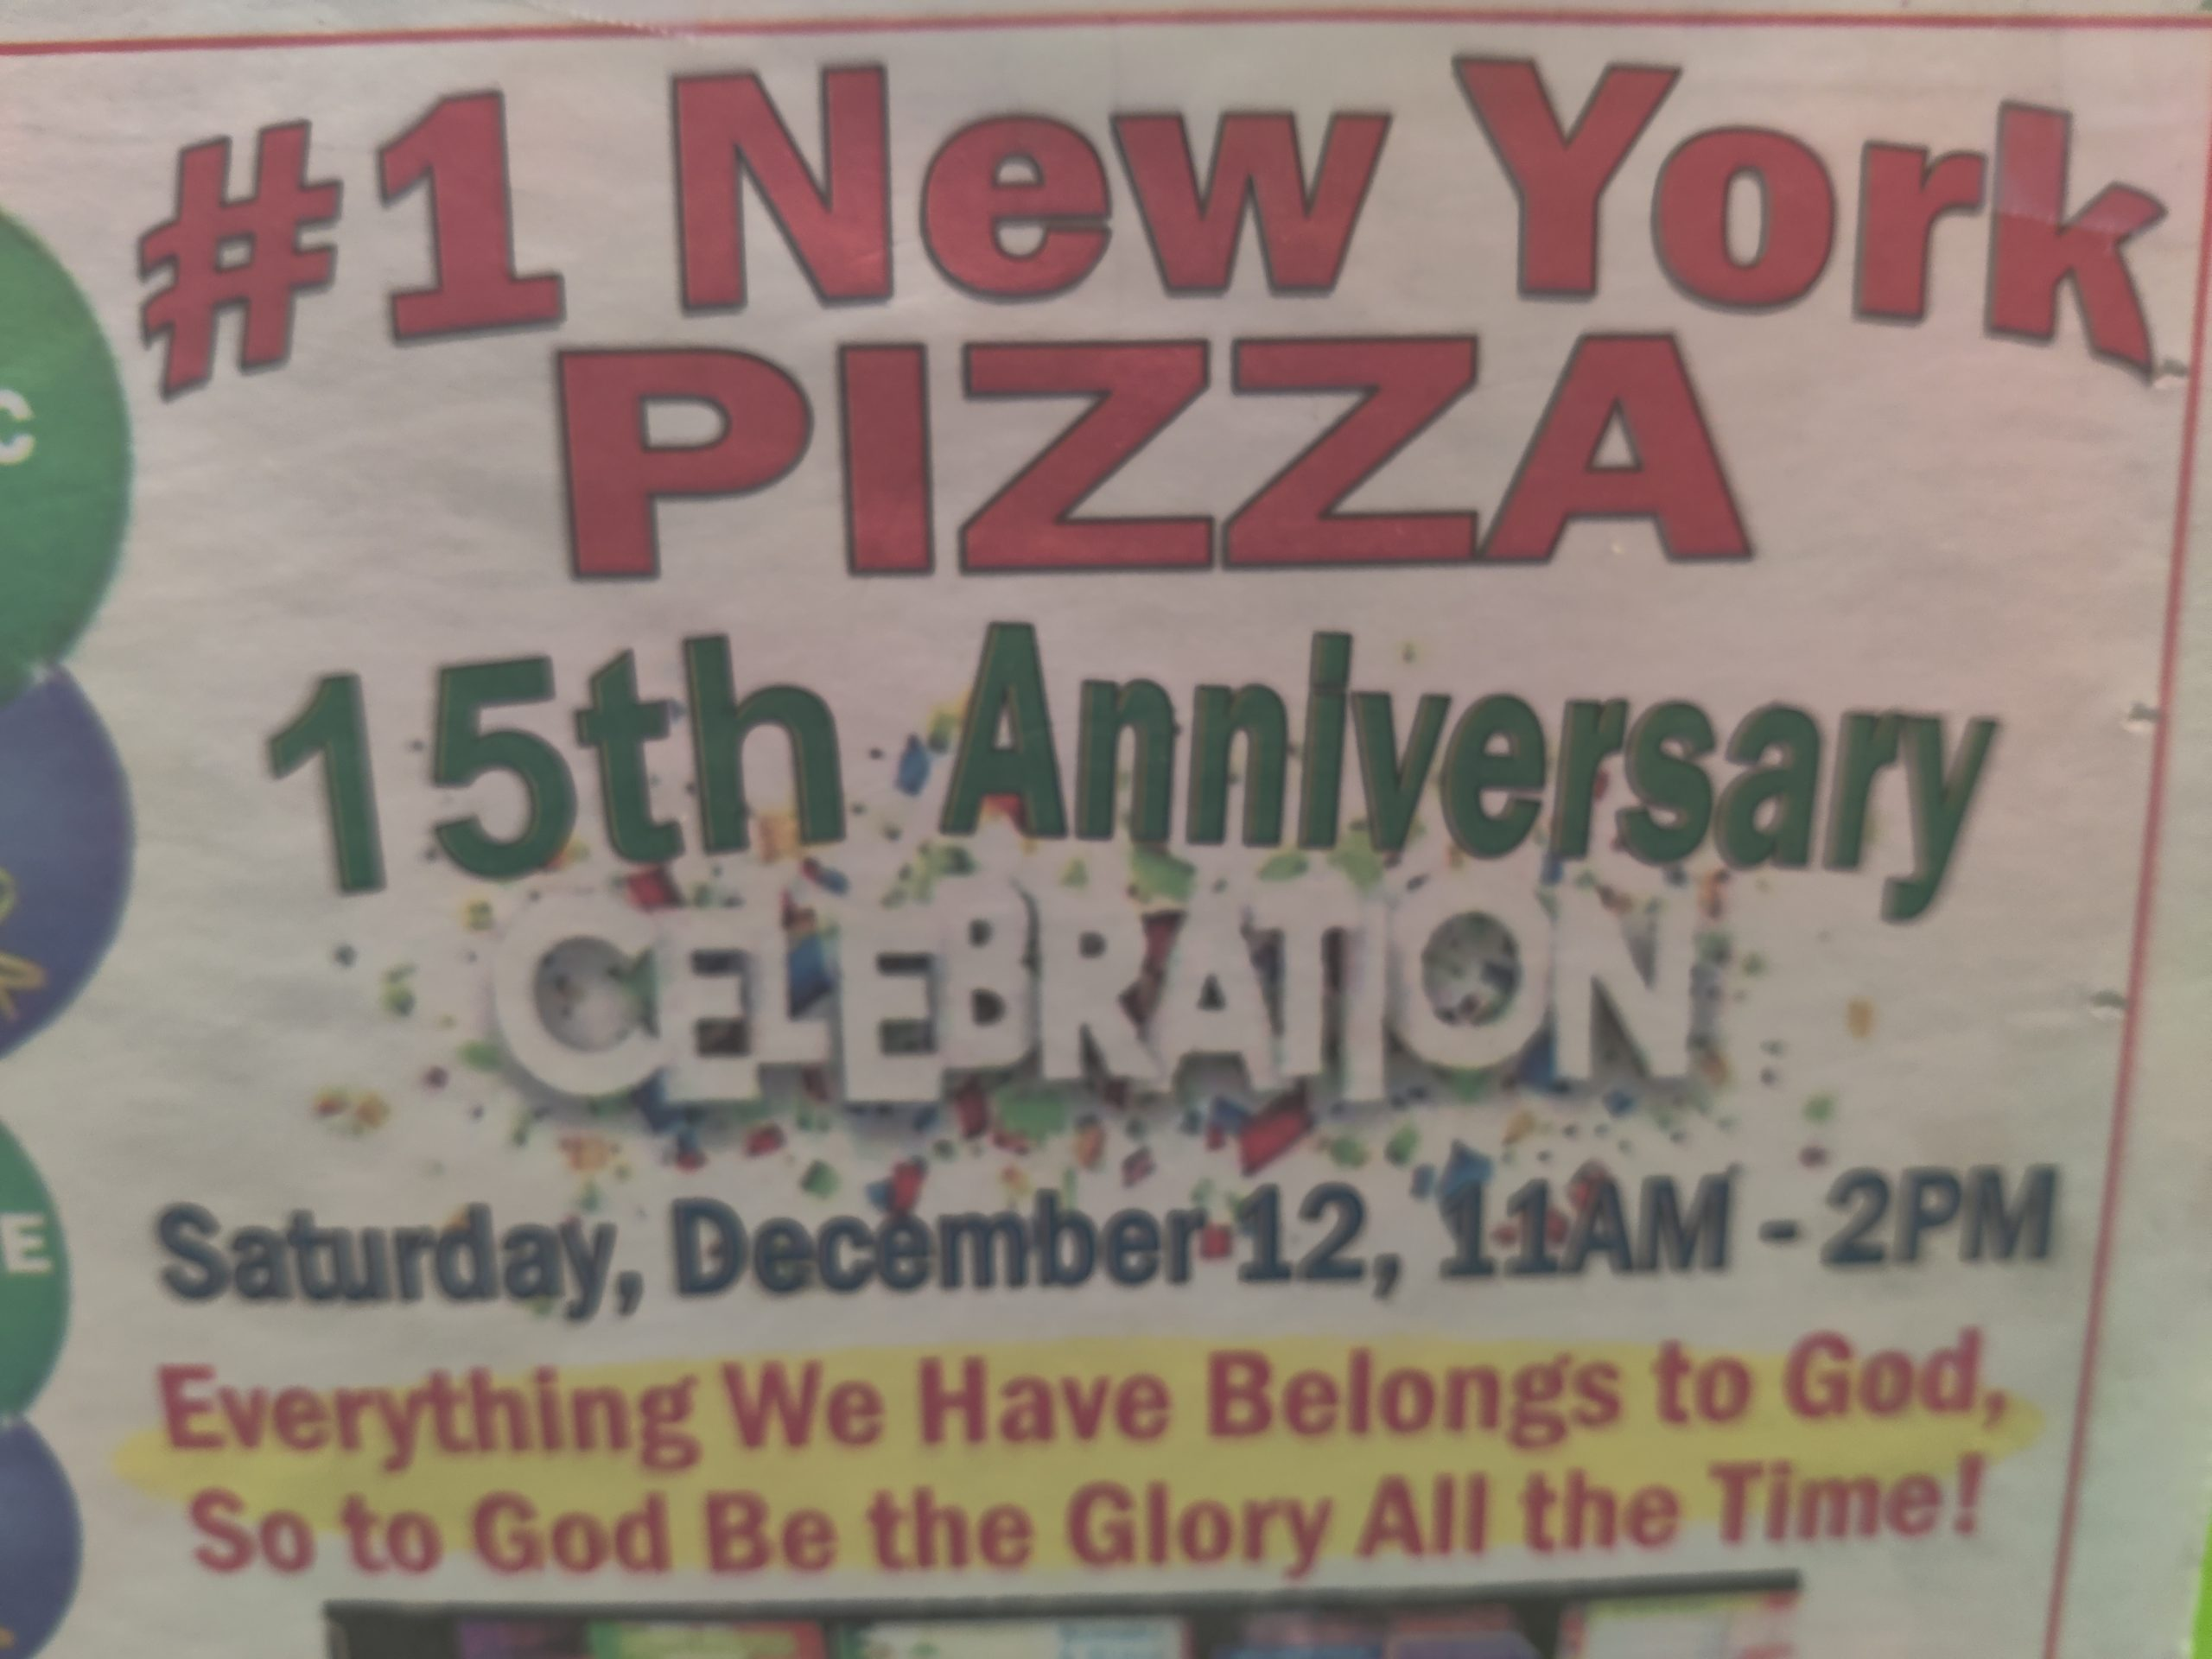 12-10-2020 #1 New York Pizza in Marion Oaks is Celebrating 15yrs in Service - Dinning Room is Open (3)